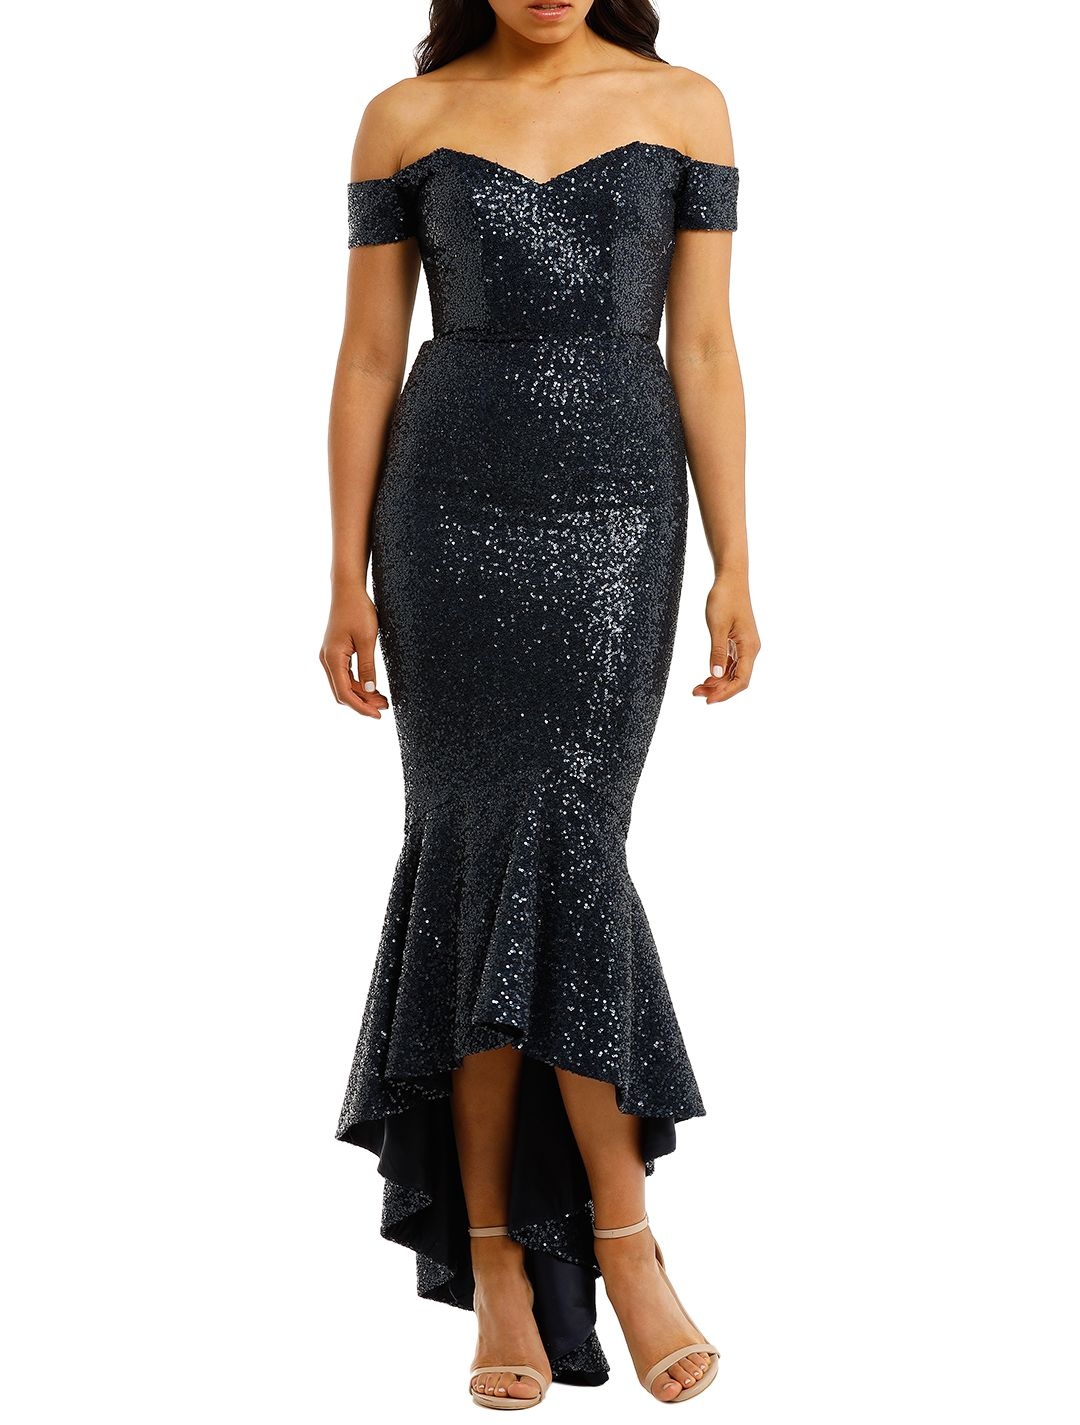 Portia-and-Scarlett-Diamond-Gown-Blue-Front